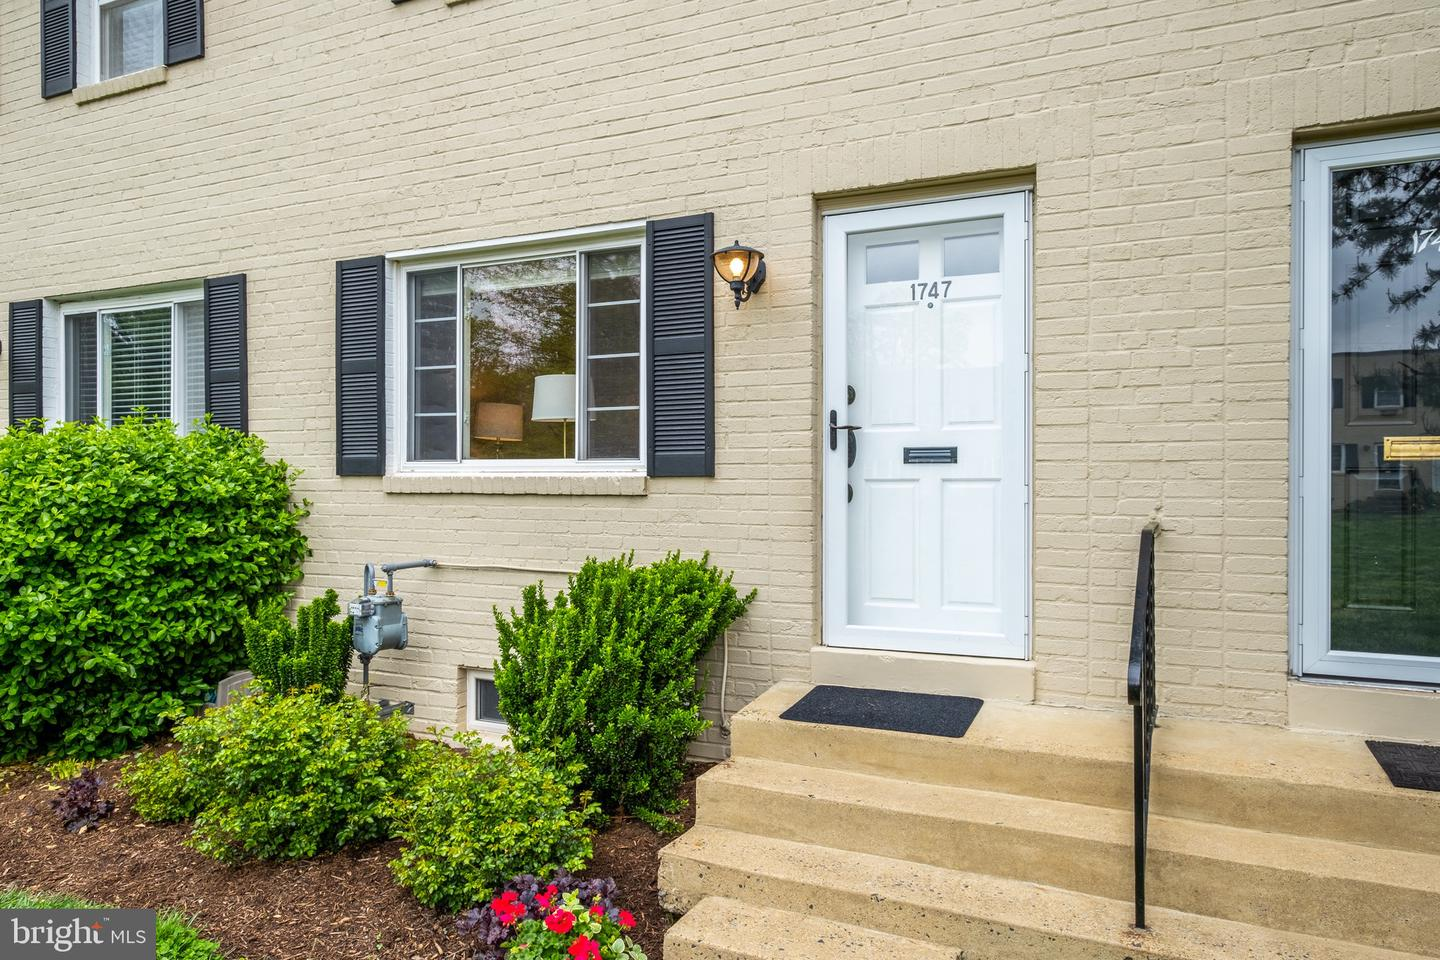 1747 Cliff Street   - Alexandria, Virginia 22301